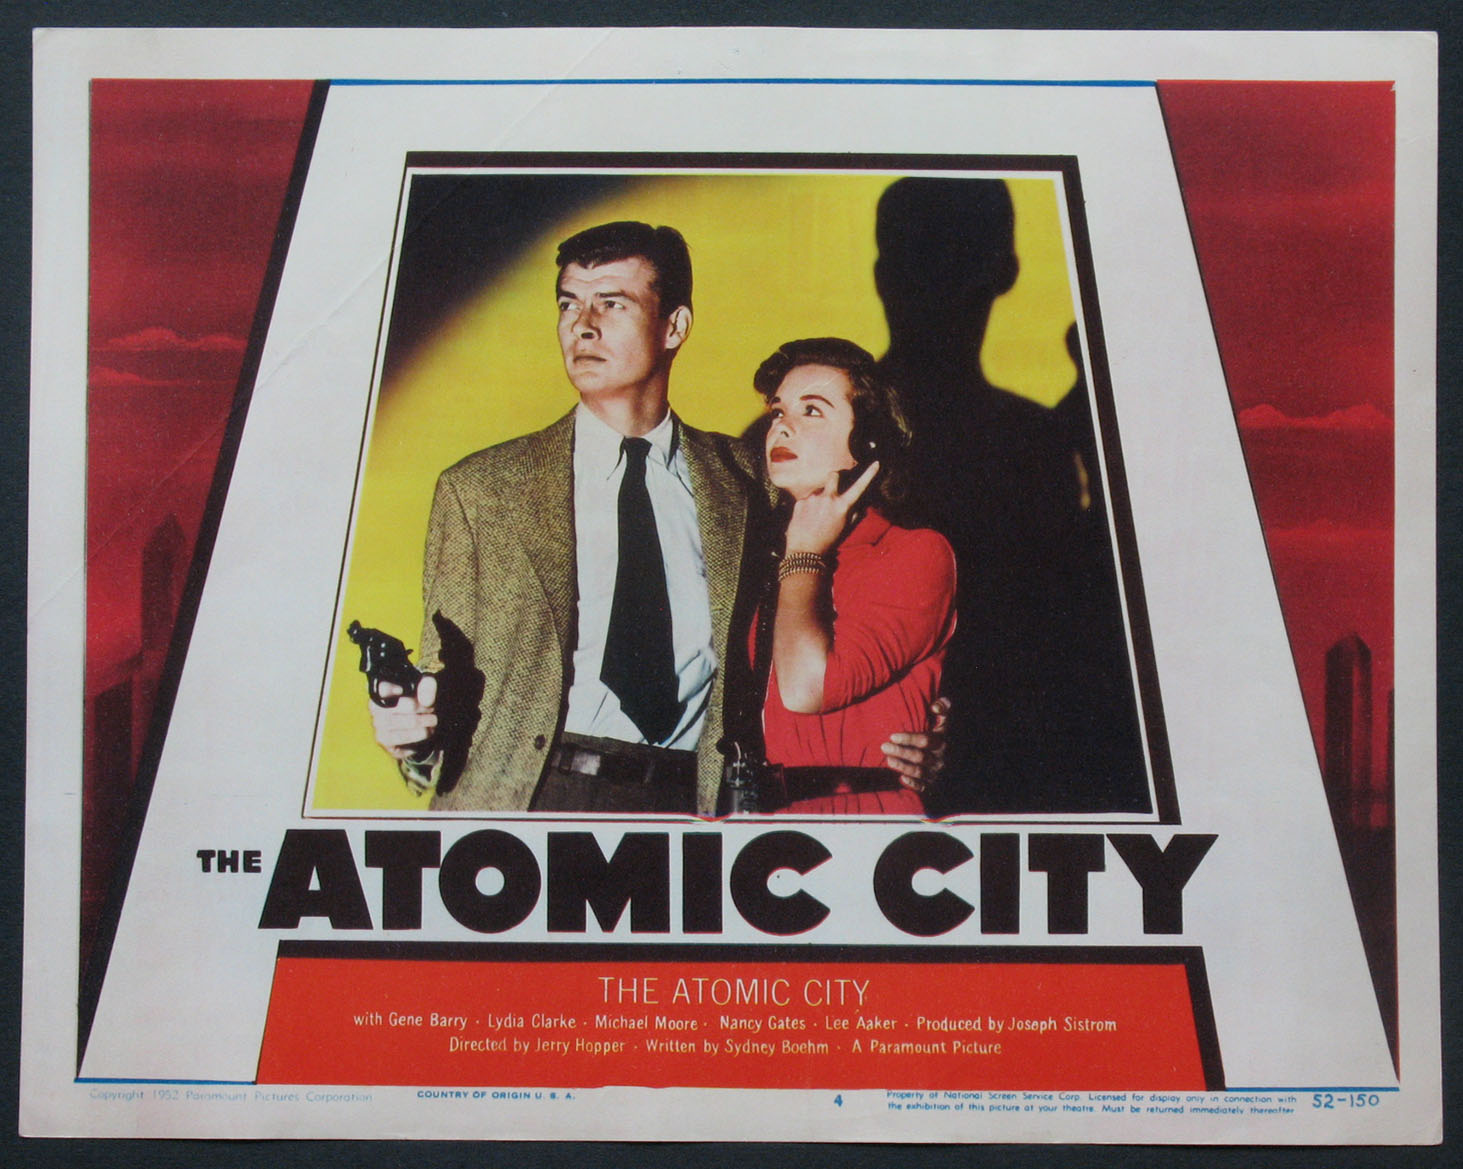 ATOMIC CITY @ FilmPosters.com